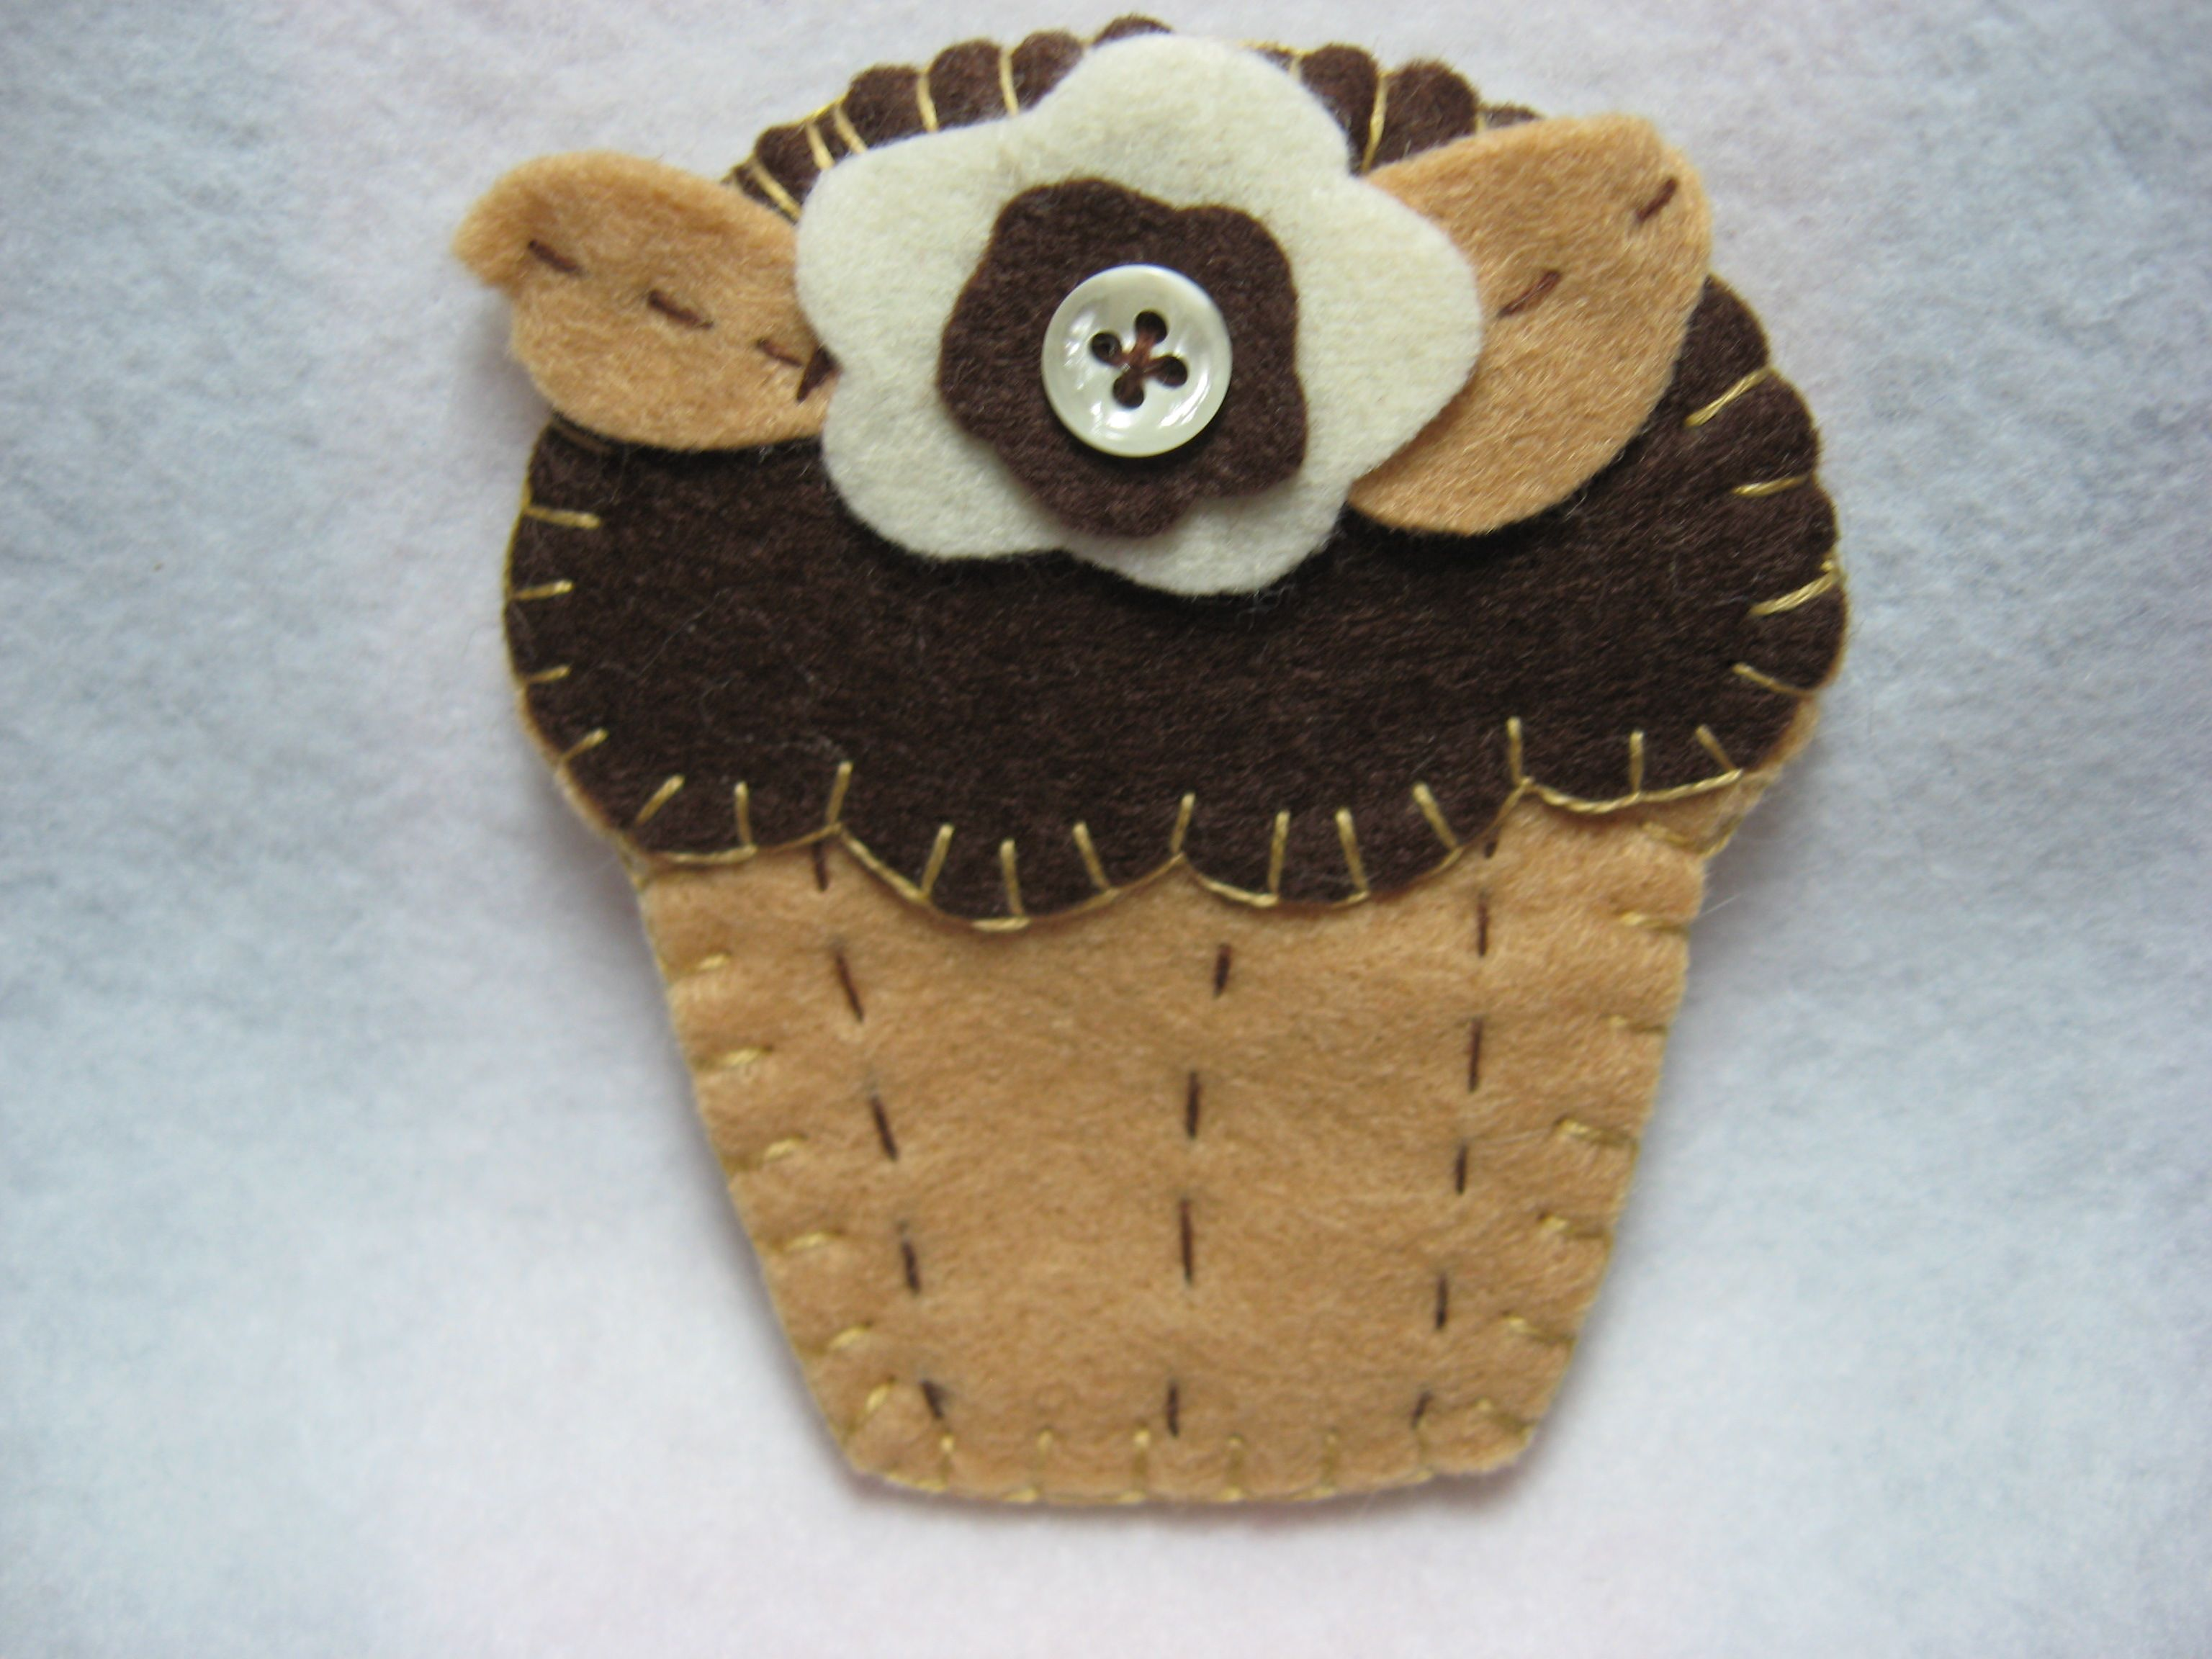 Needle Case / Book made of wool felt. Made to look like spice cake with chocolate frosting